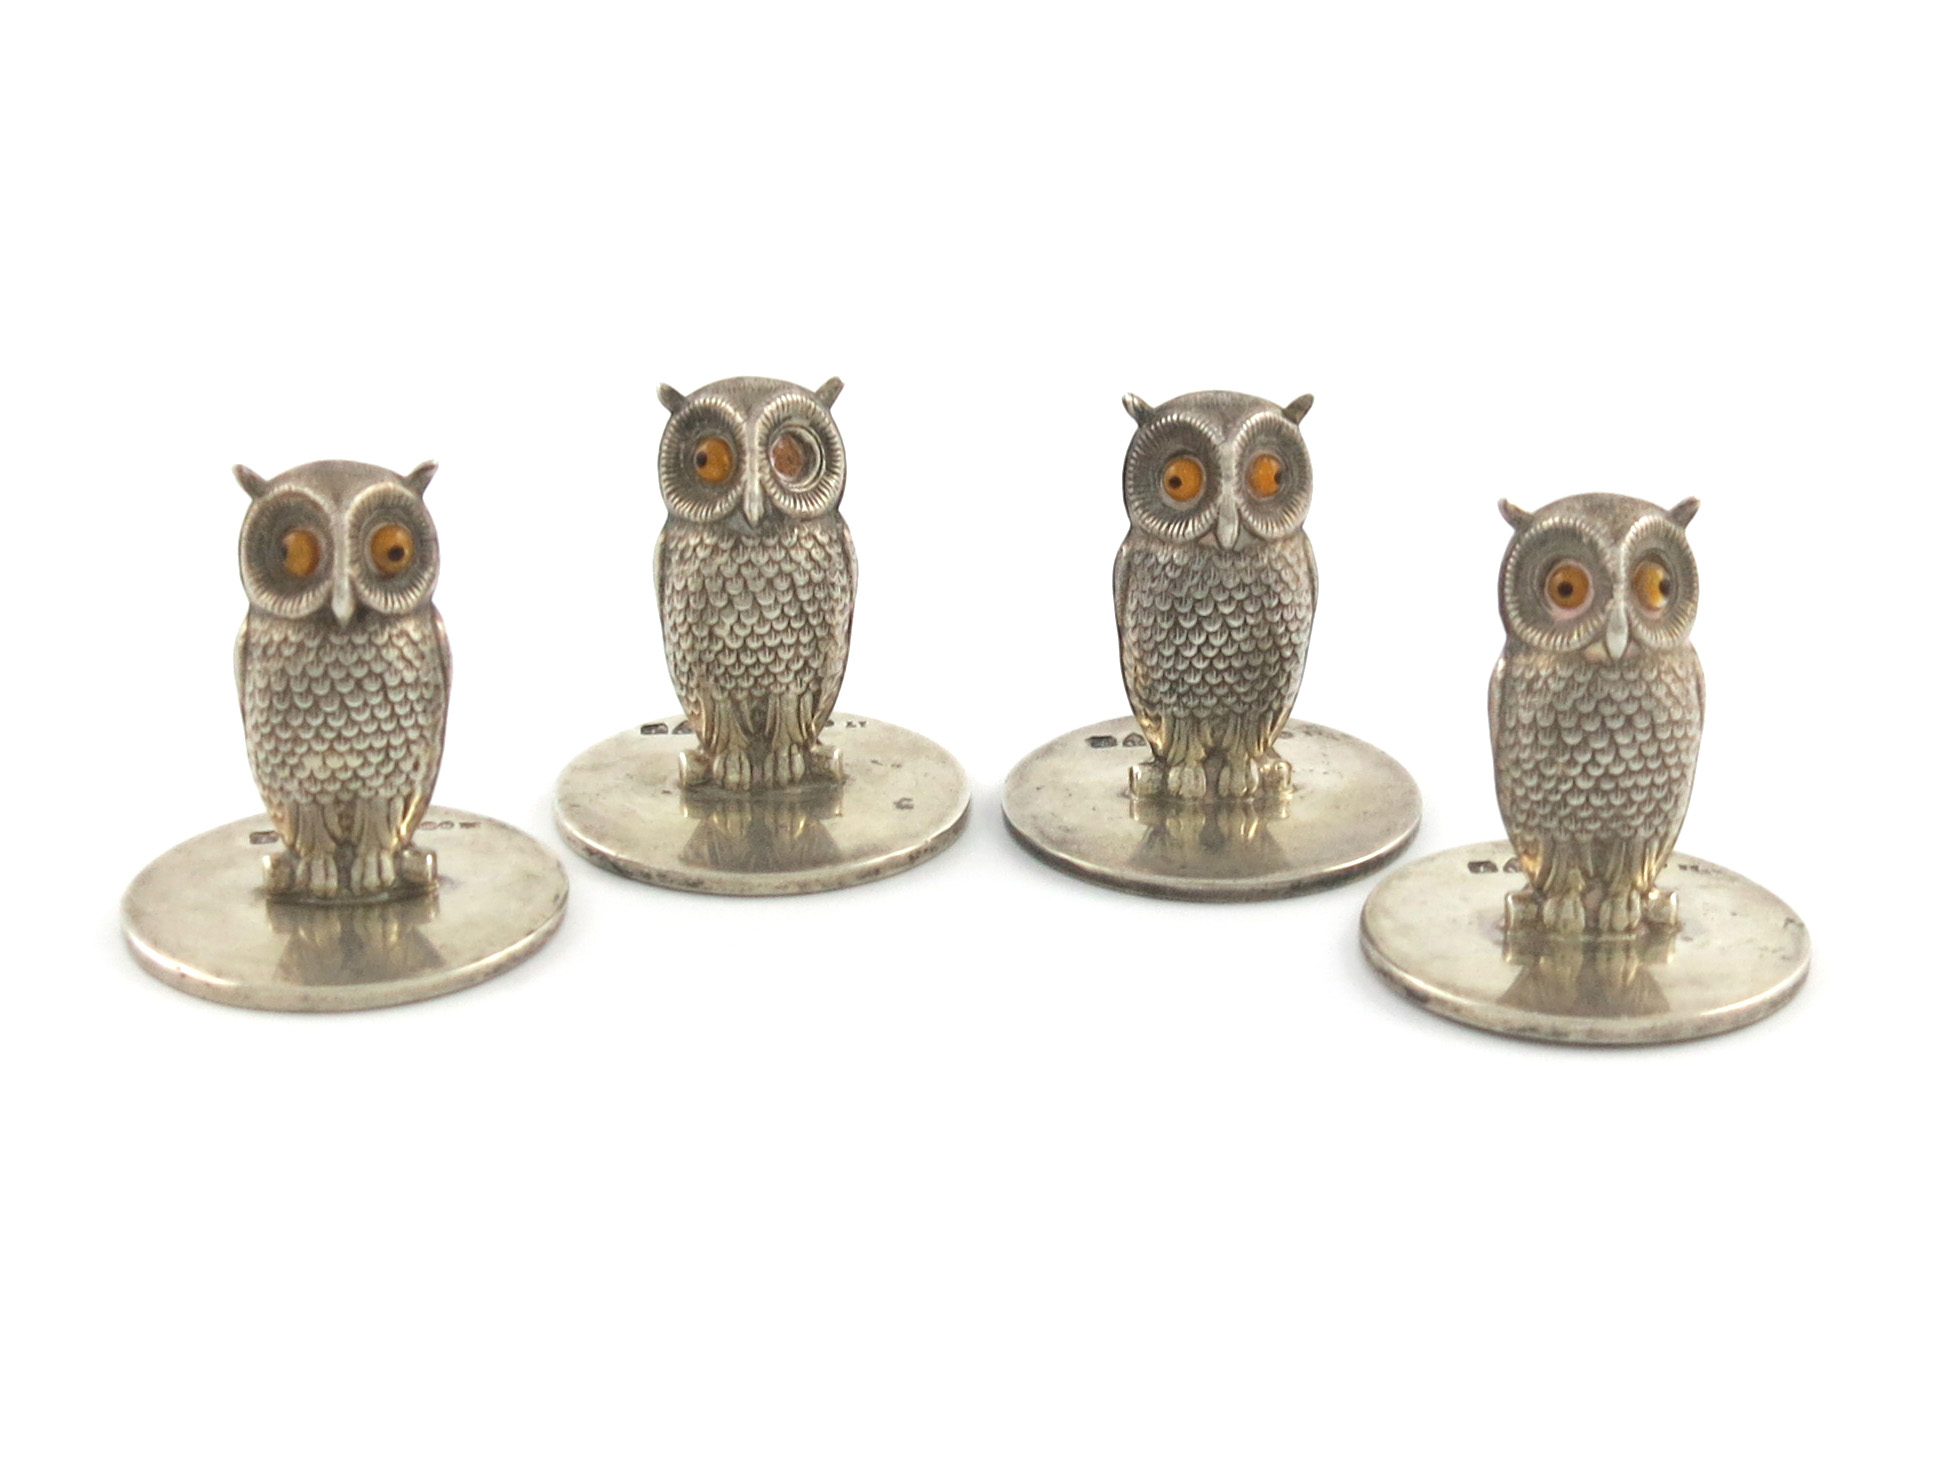 A set of four Edwardian novelty silver menu card holders